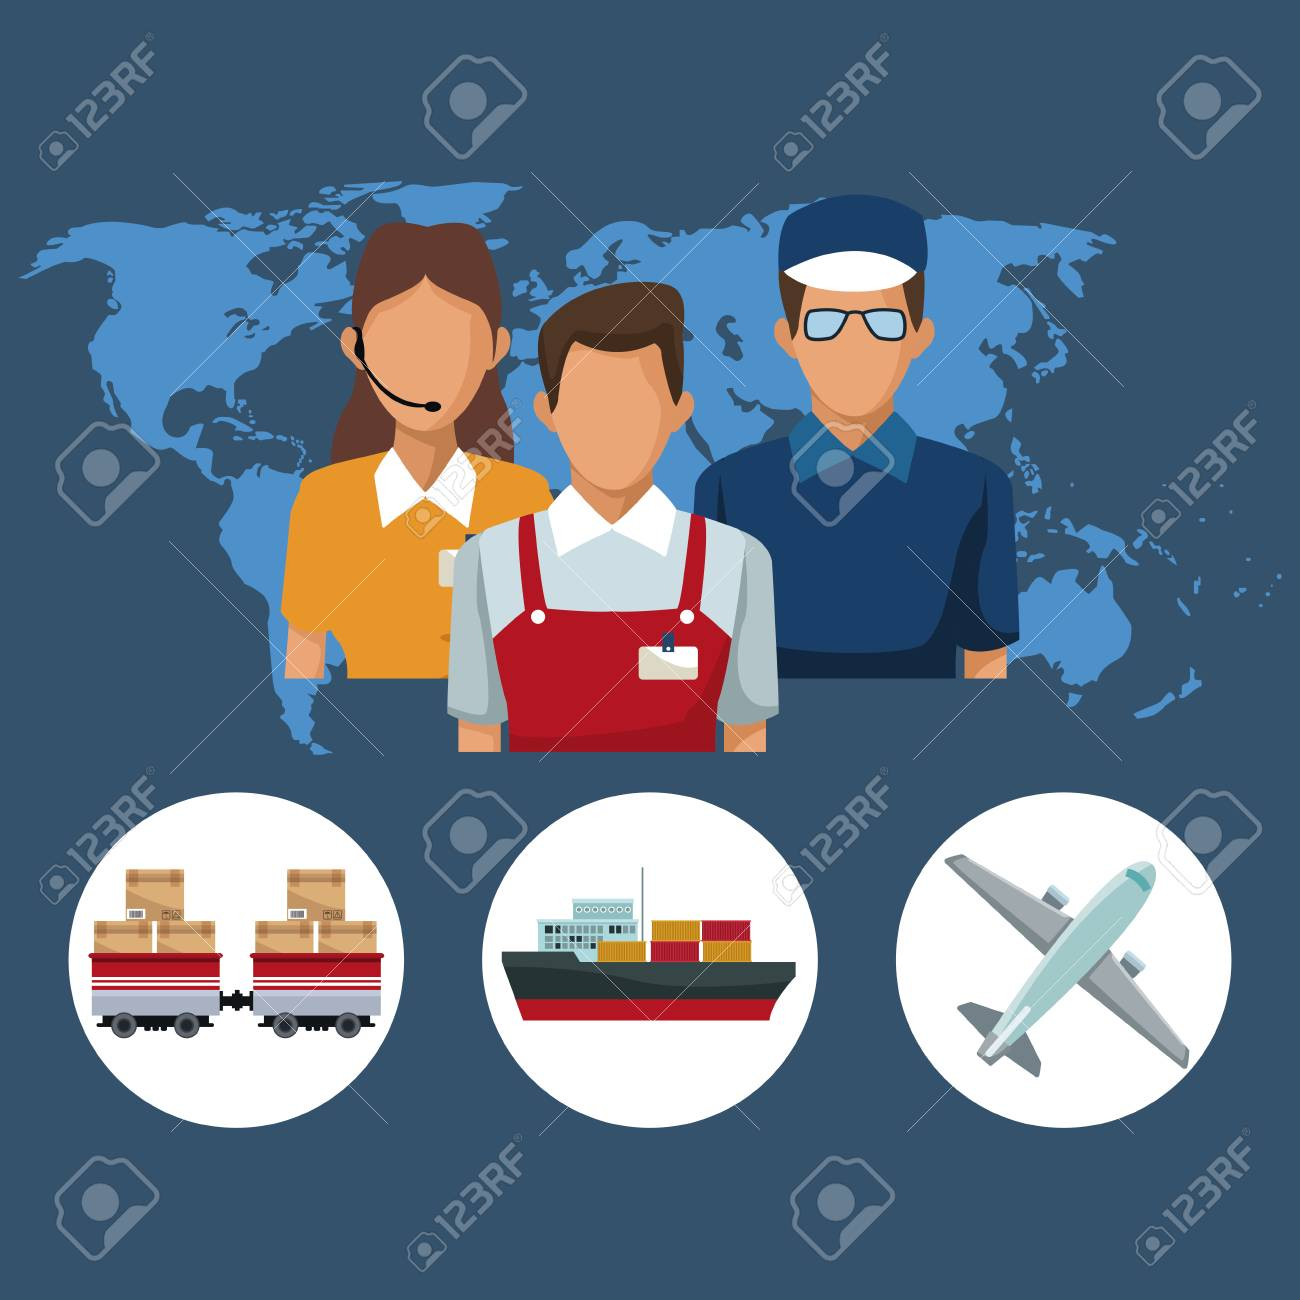 Color silhouette world map background with icons people logistics color silhouette world map background with icons people logistics and transport vehicles vector illustration stock vector gumiabroncs Image collections